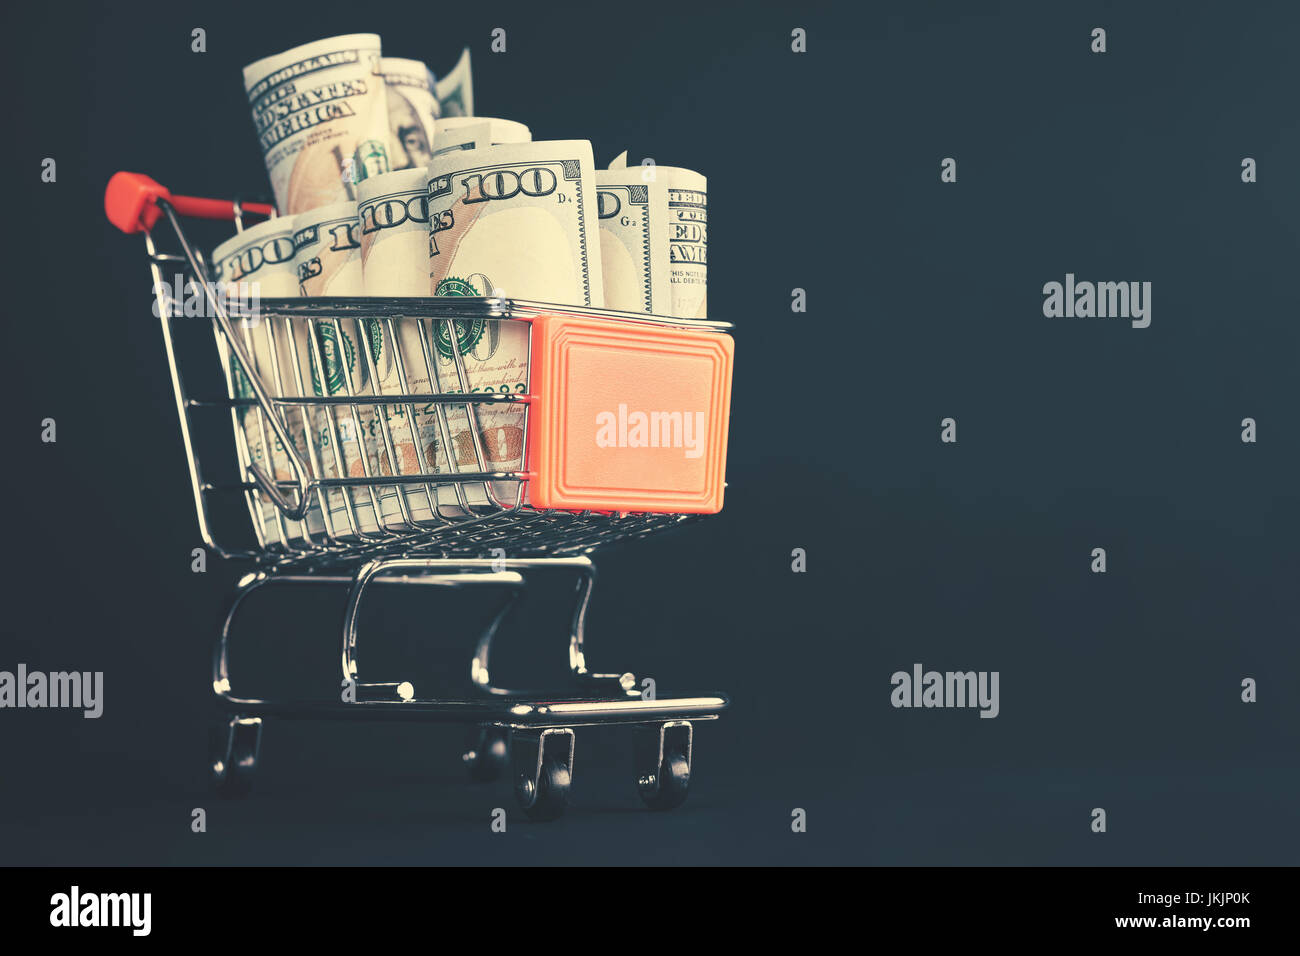 Shopping cart filled with one hundred dollar bill rolls, shallow depth of field, color toning applied. - Stock Image